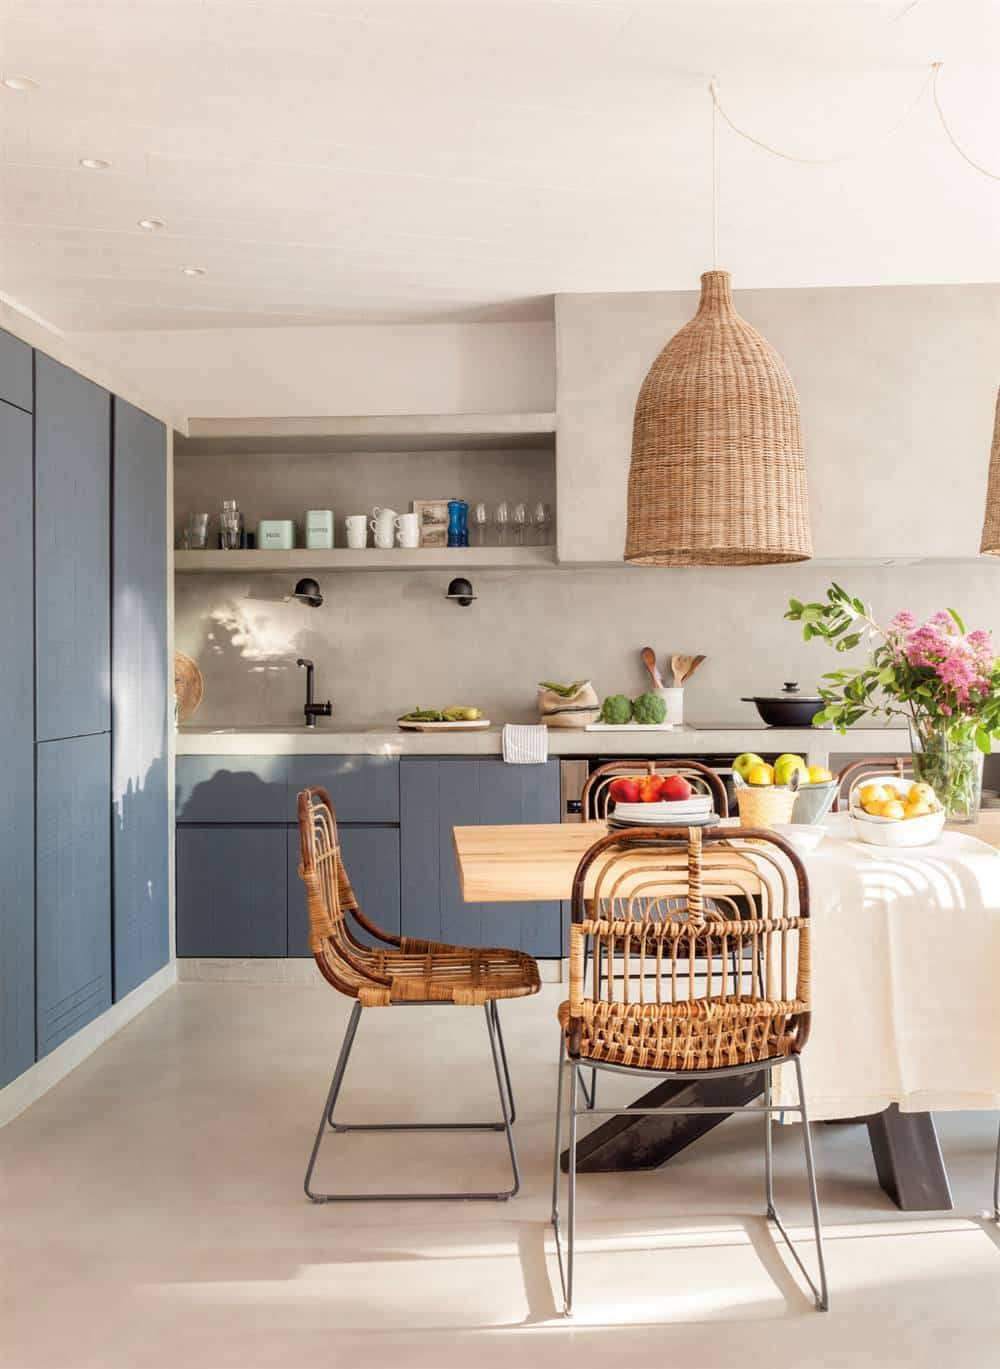 Kitchens with microcemento